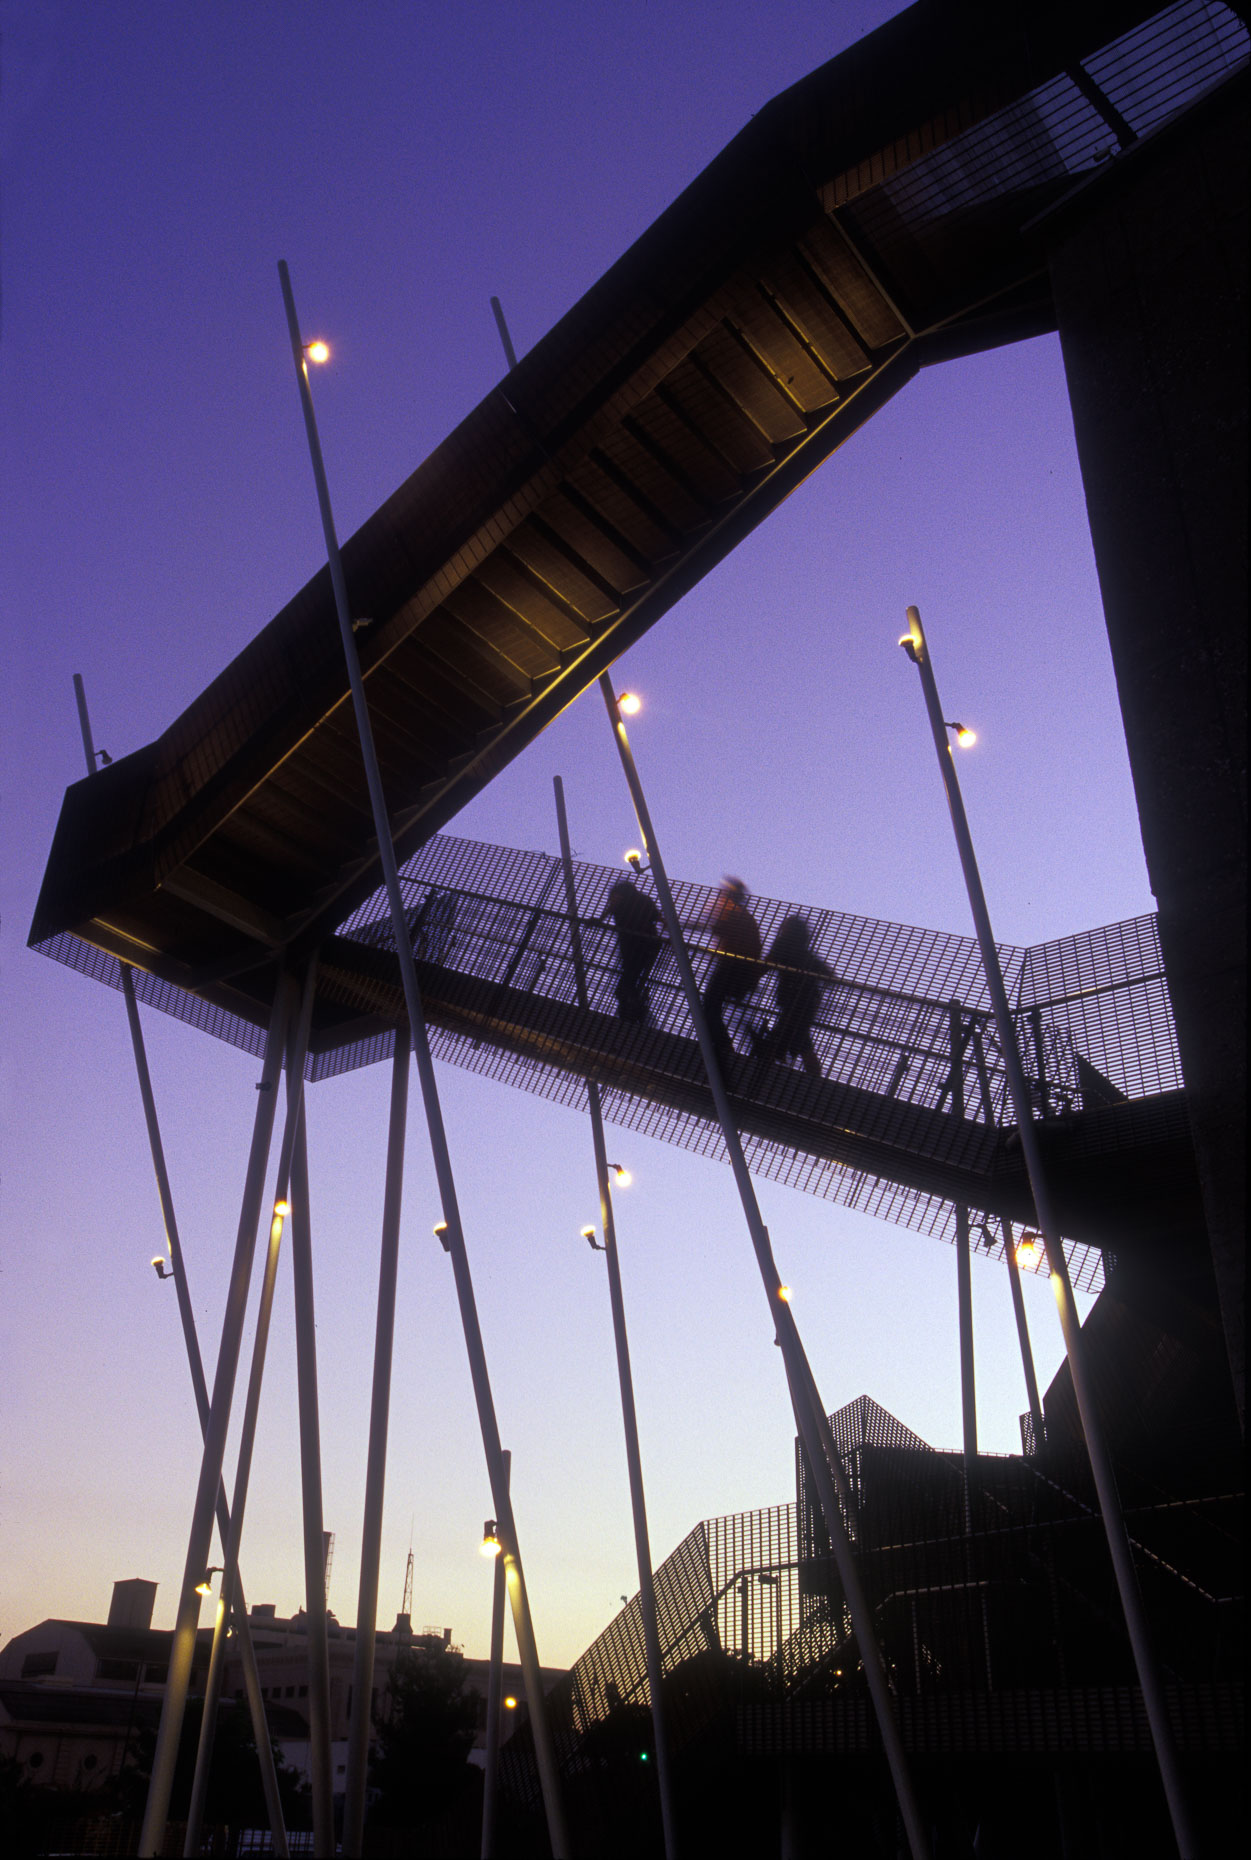 People walking on exterior building staircase silhouette against dusk sky at Art Center College of Design in Pasadena, California. Architecture.  David Zaitz Photography.